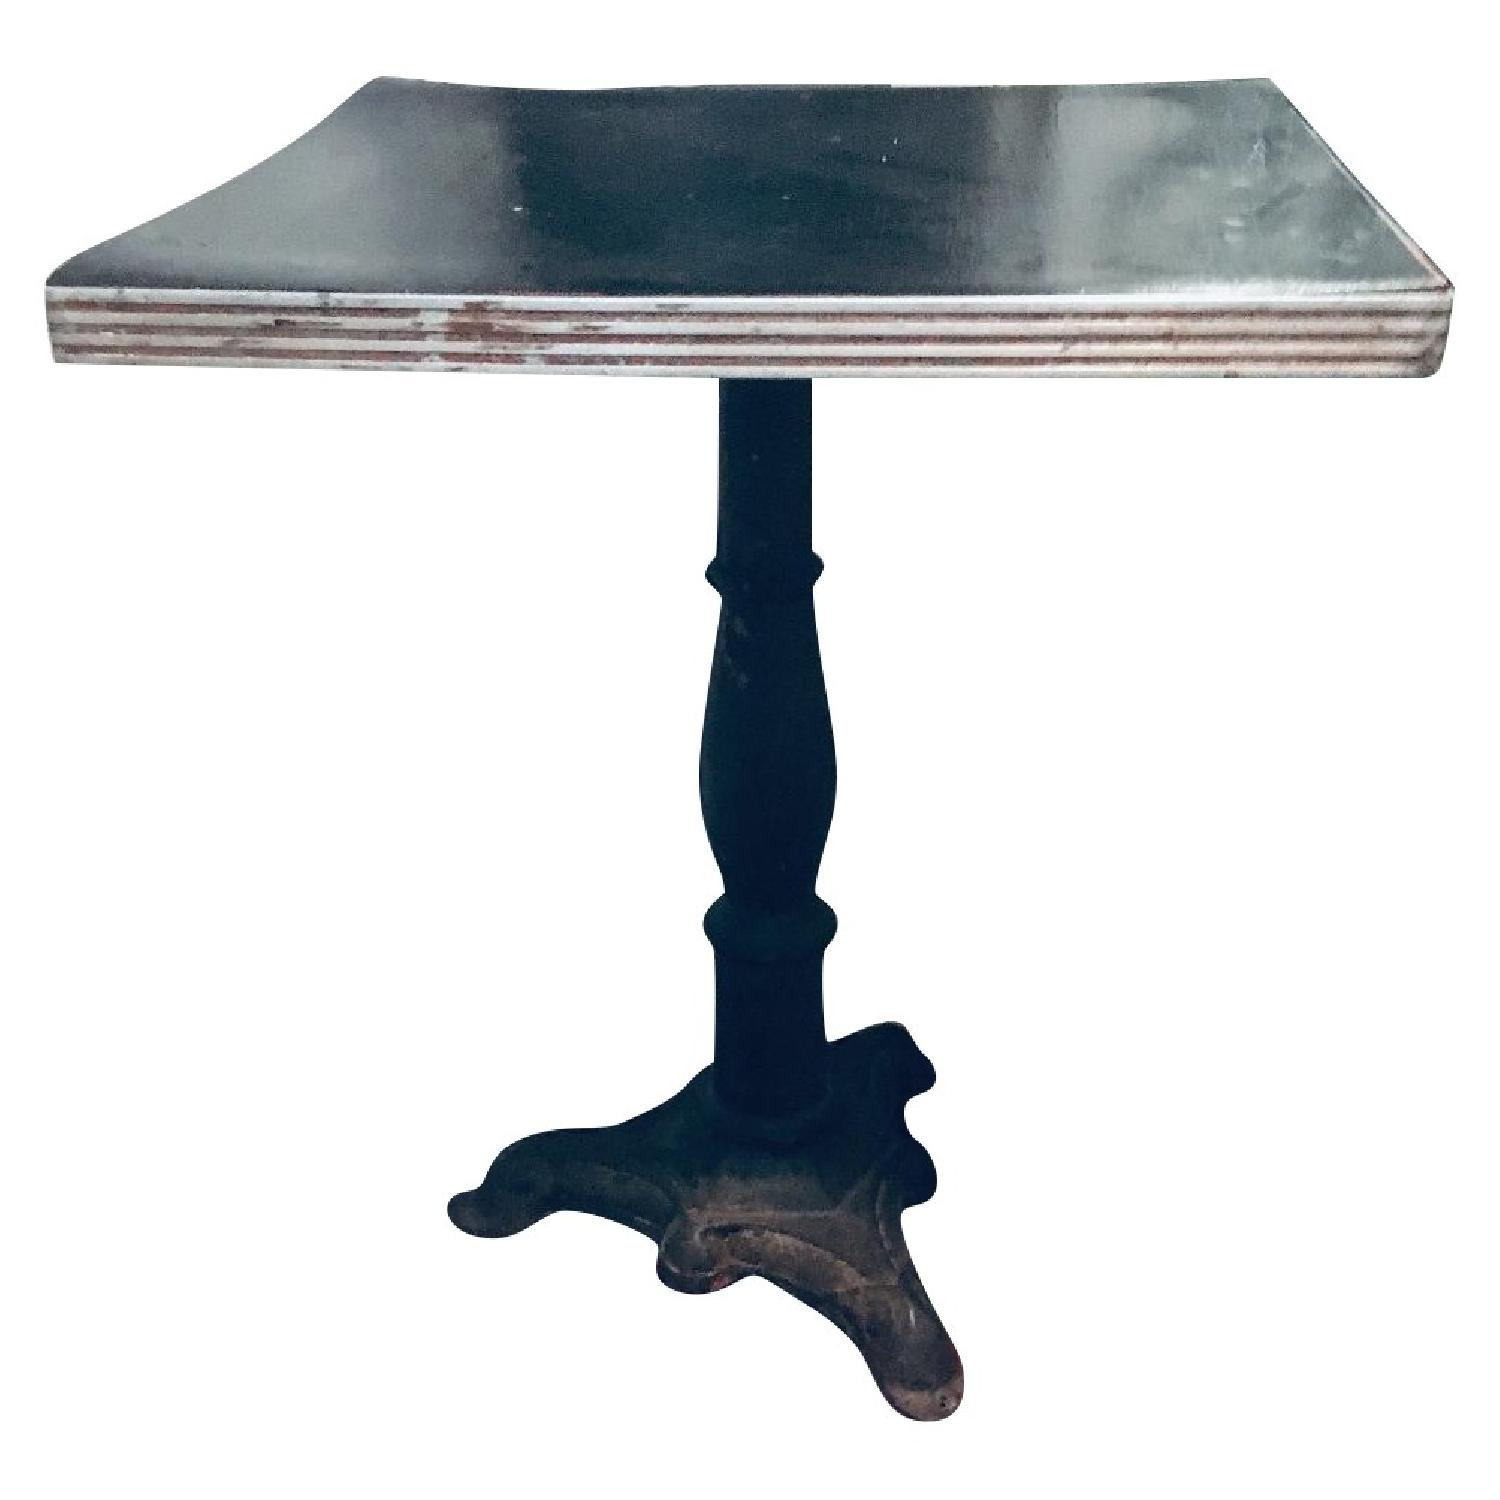 Antique Cafe Table w/ Pedestal Stand